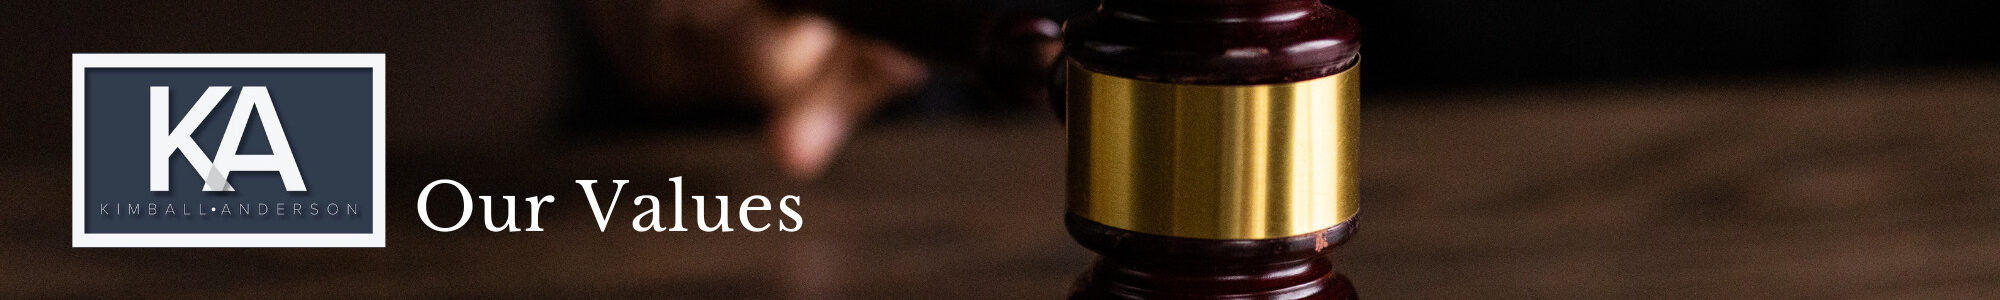 Header for the section containing our values as a law firm.